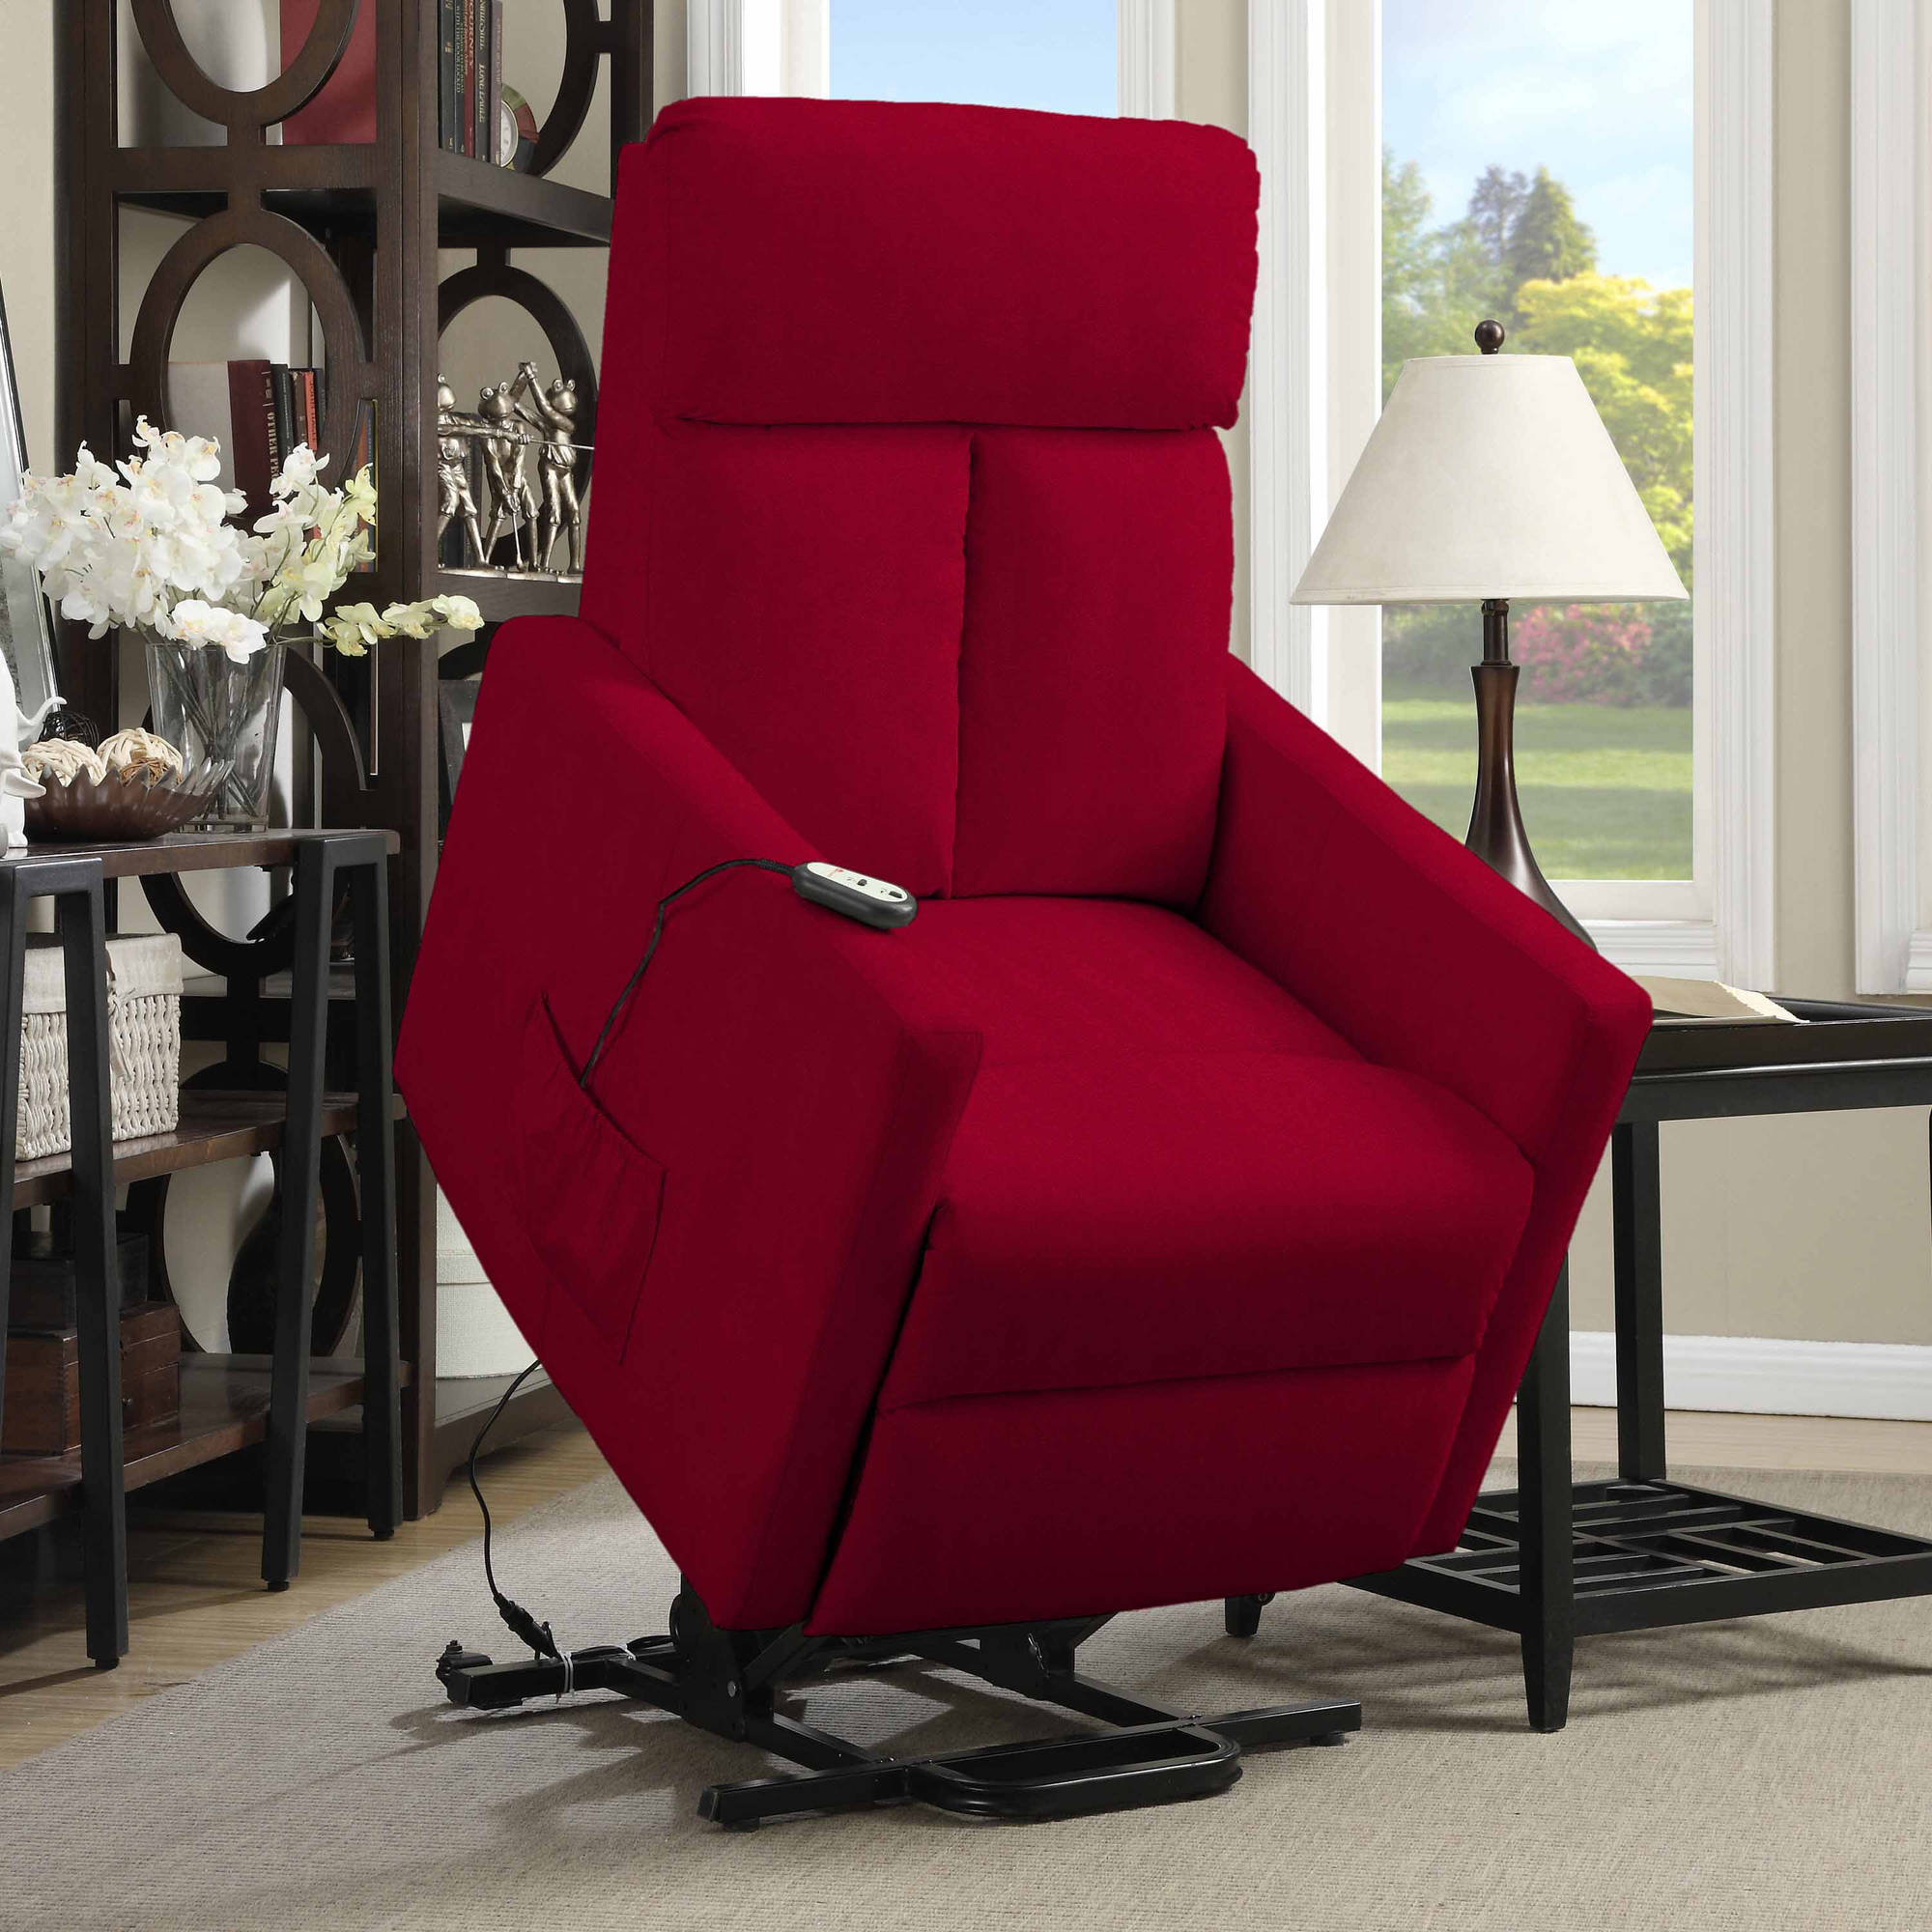 ProLounger Power Lift Chair Microfiber Recliner T-Back Multiple Colors & ProLounger Power Lift Chair Microfiber Recliner T-Back Multiple ... islam-shia.org